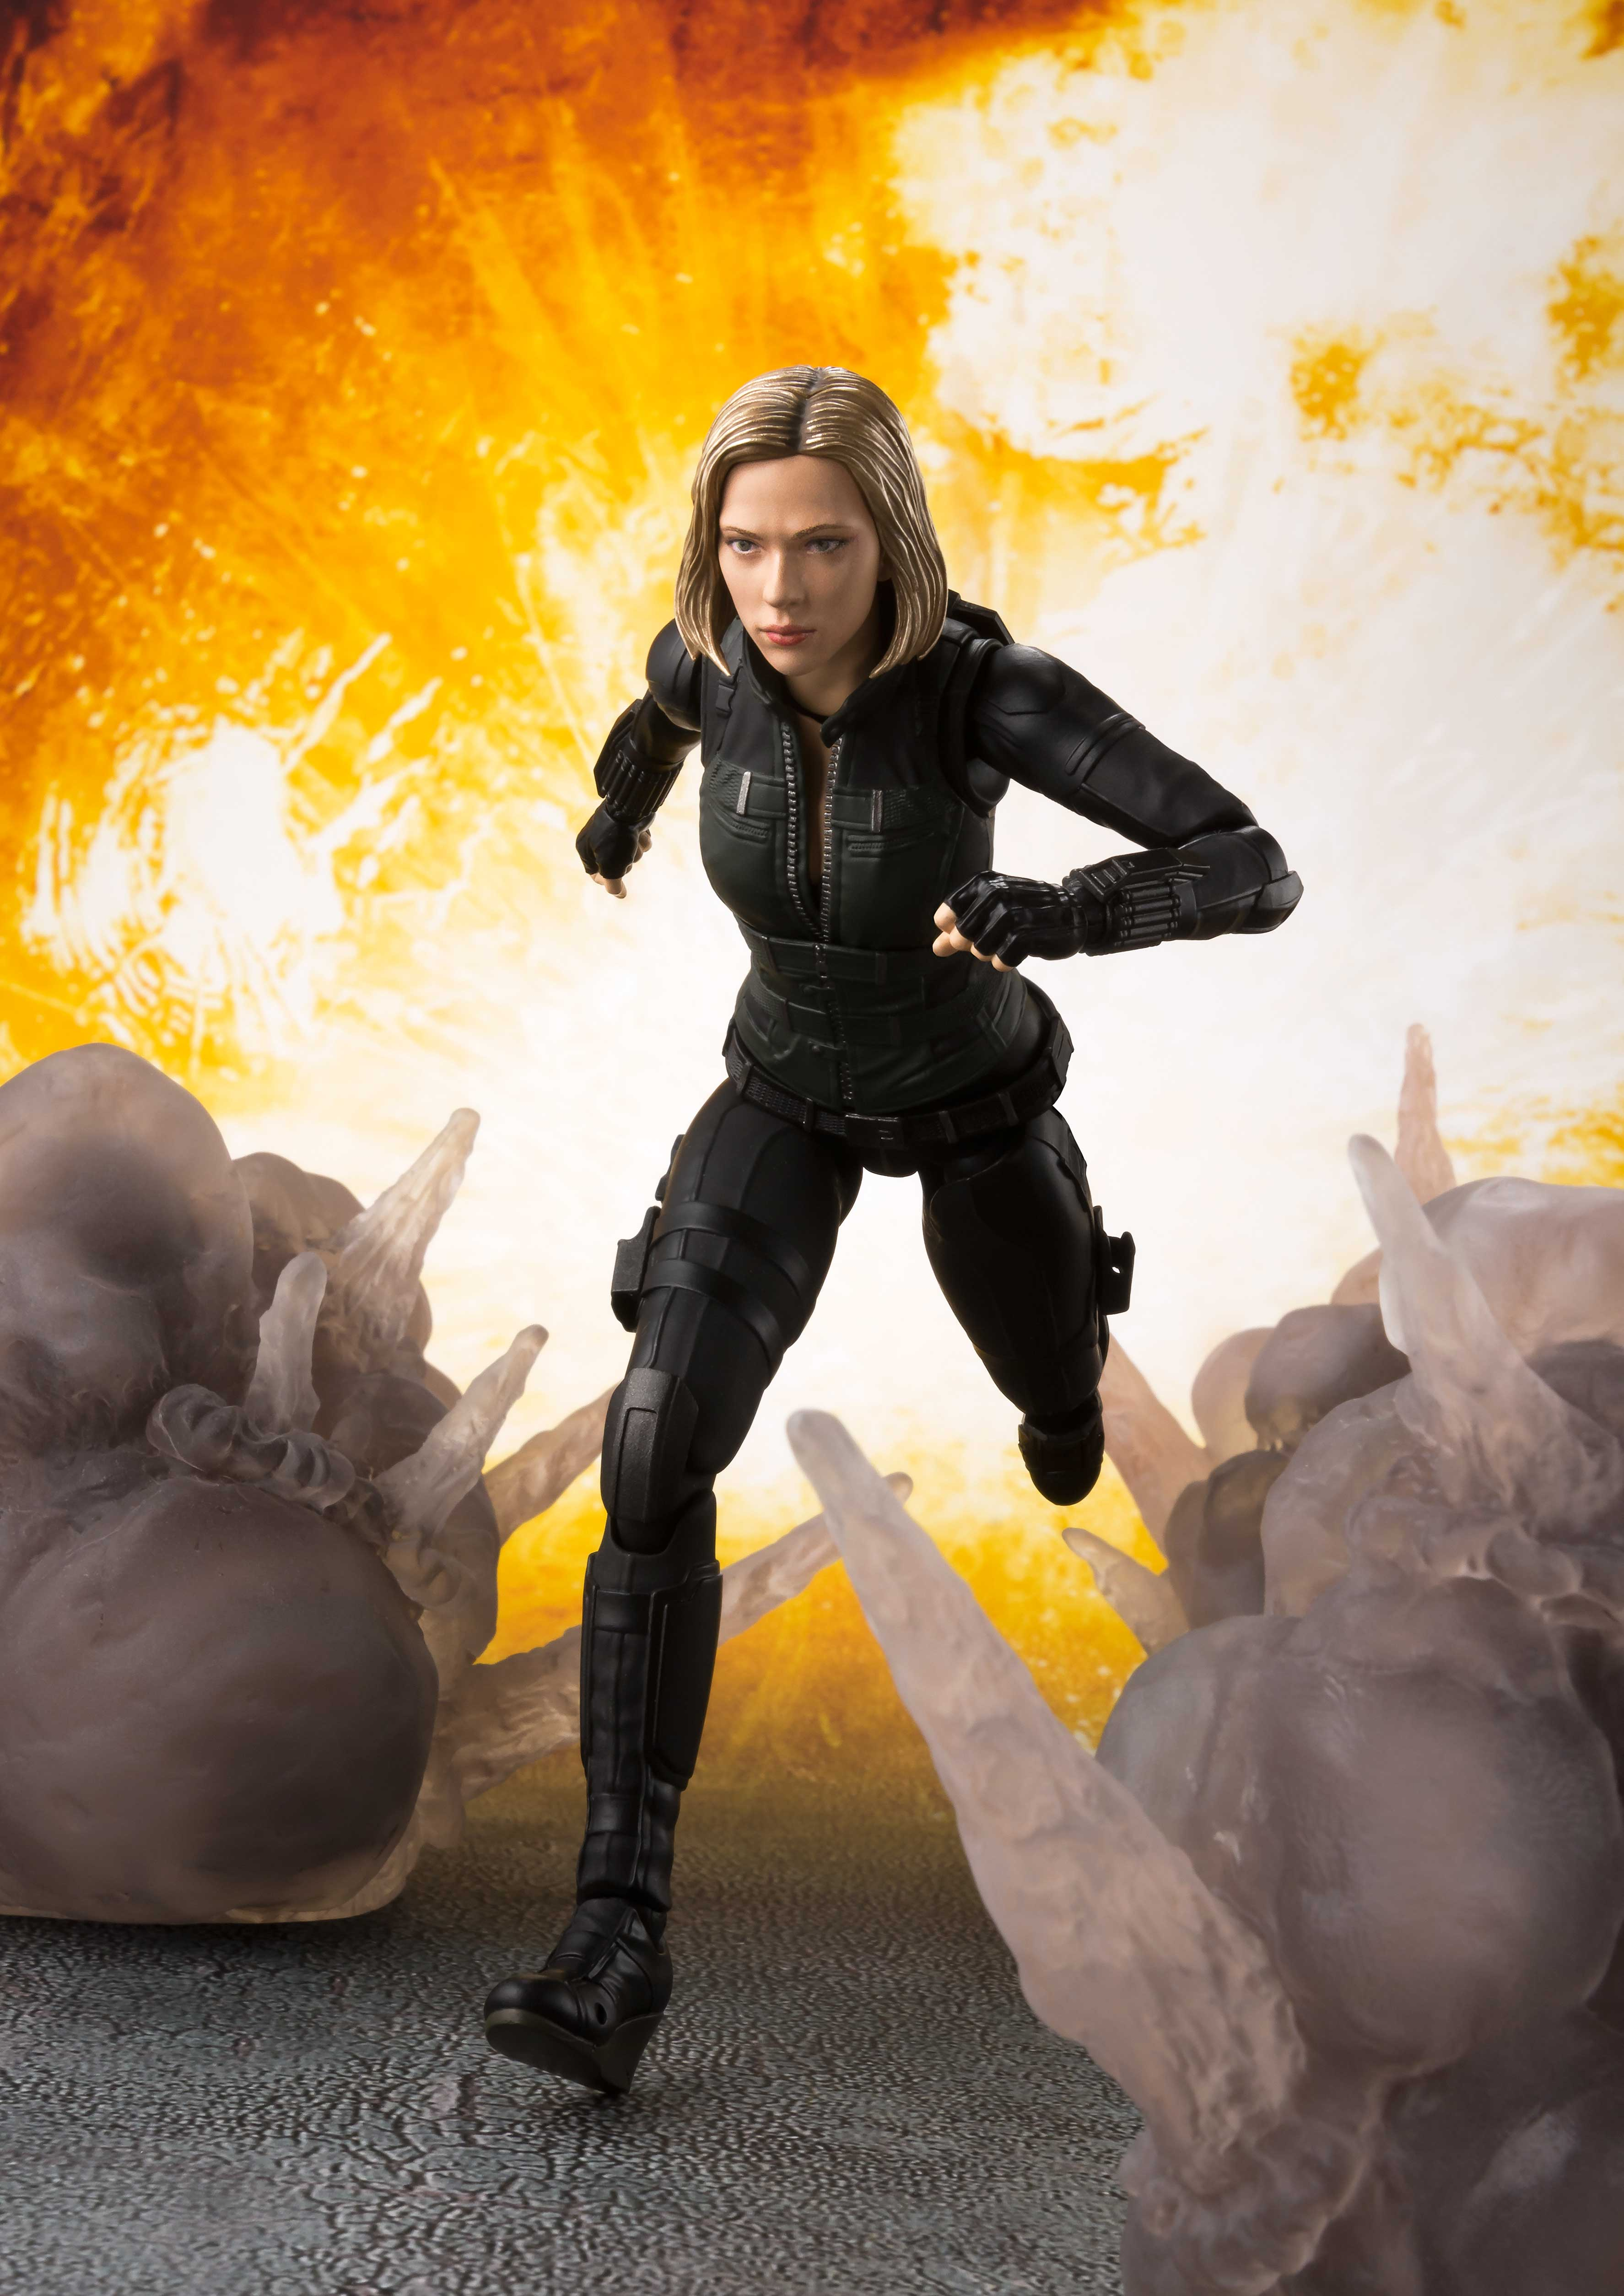 [Pre-Order] S.H. Figuarts: Avengers: Infinity War - Black Widow & Tamashii Effect Explosion